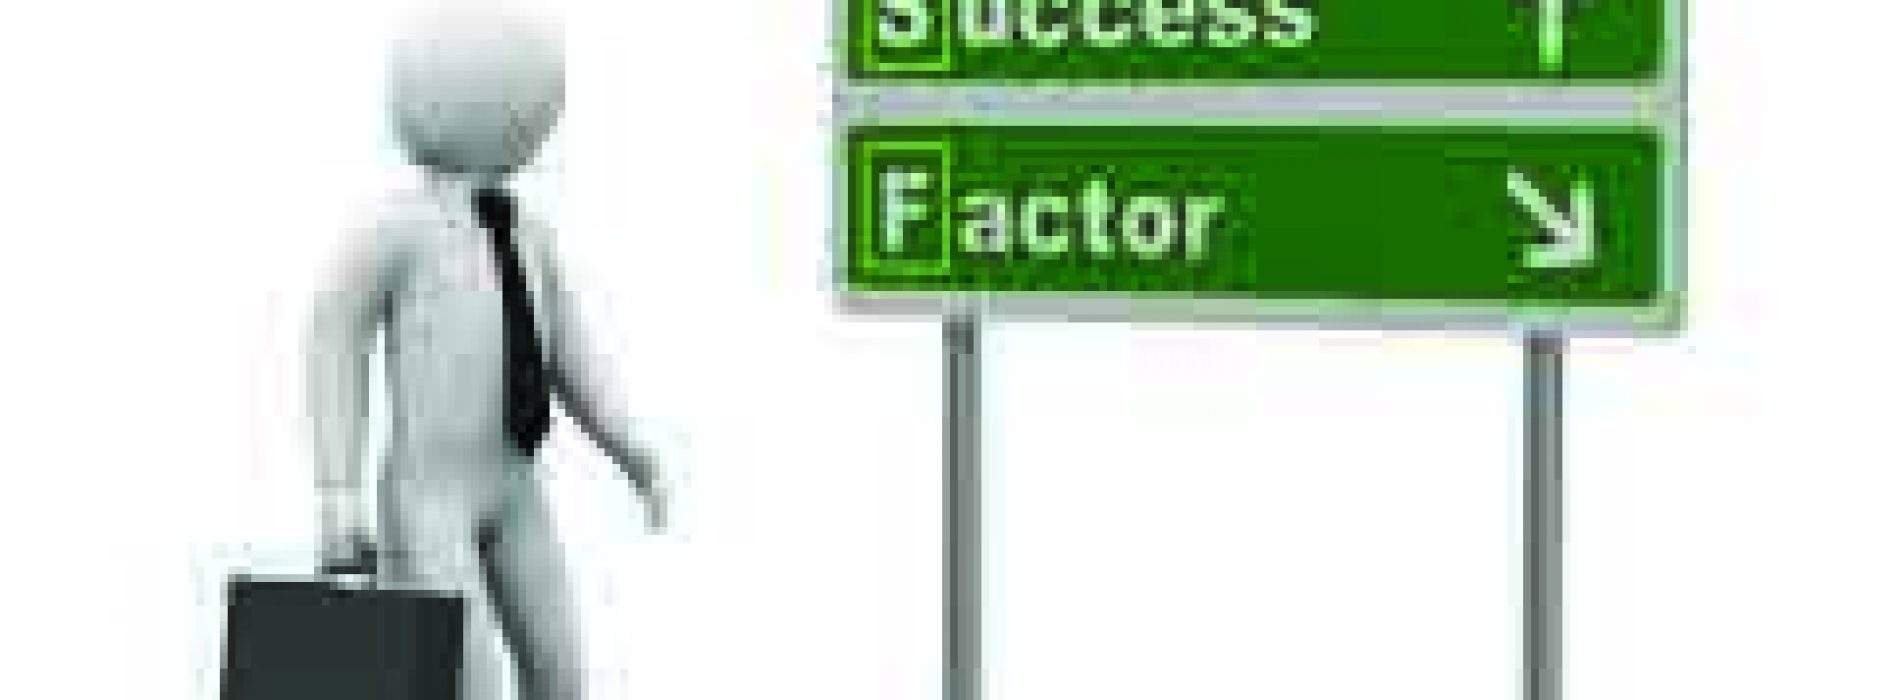 How to determine and write critical success factors